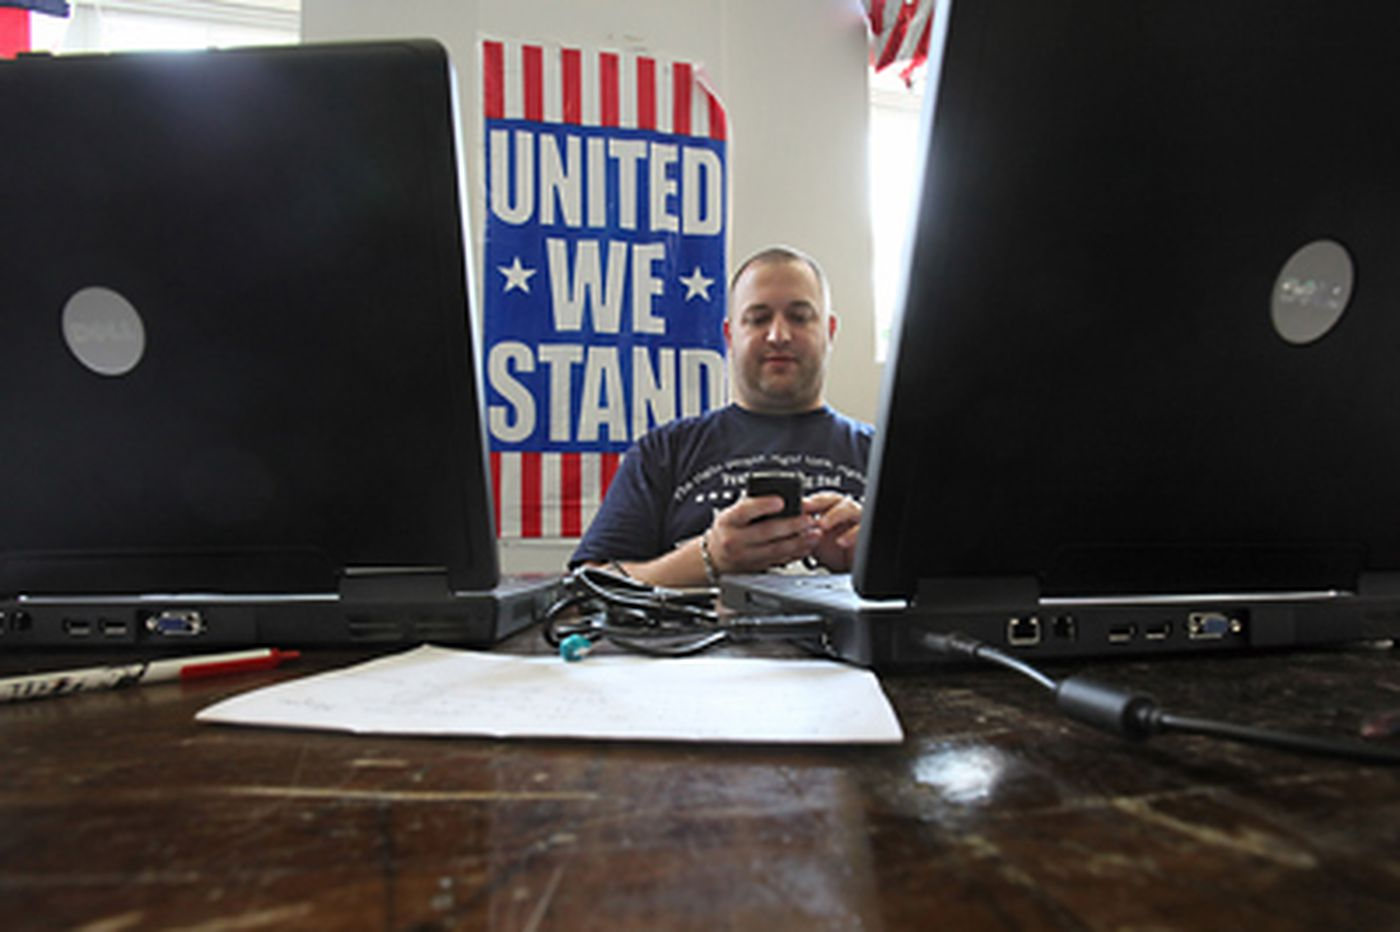 Software offers real-time election-day data